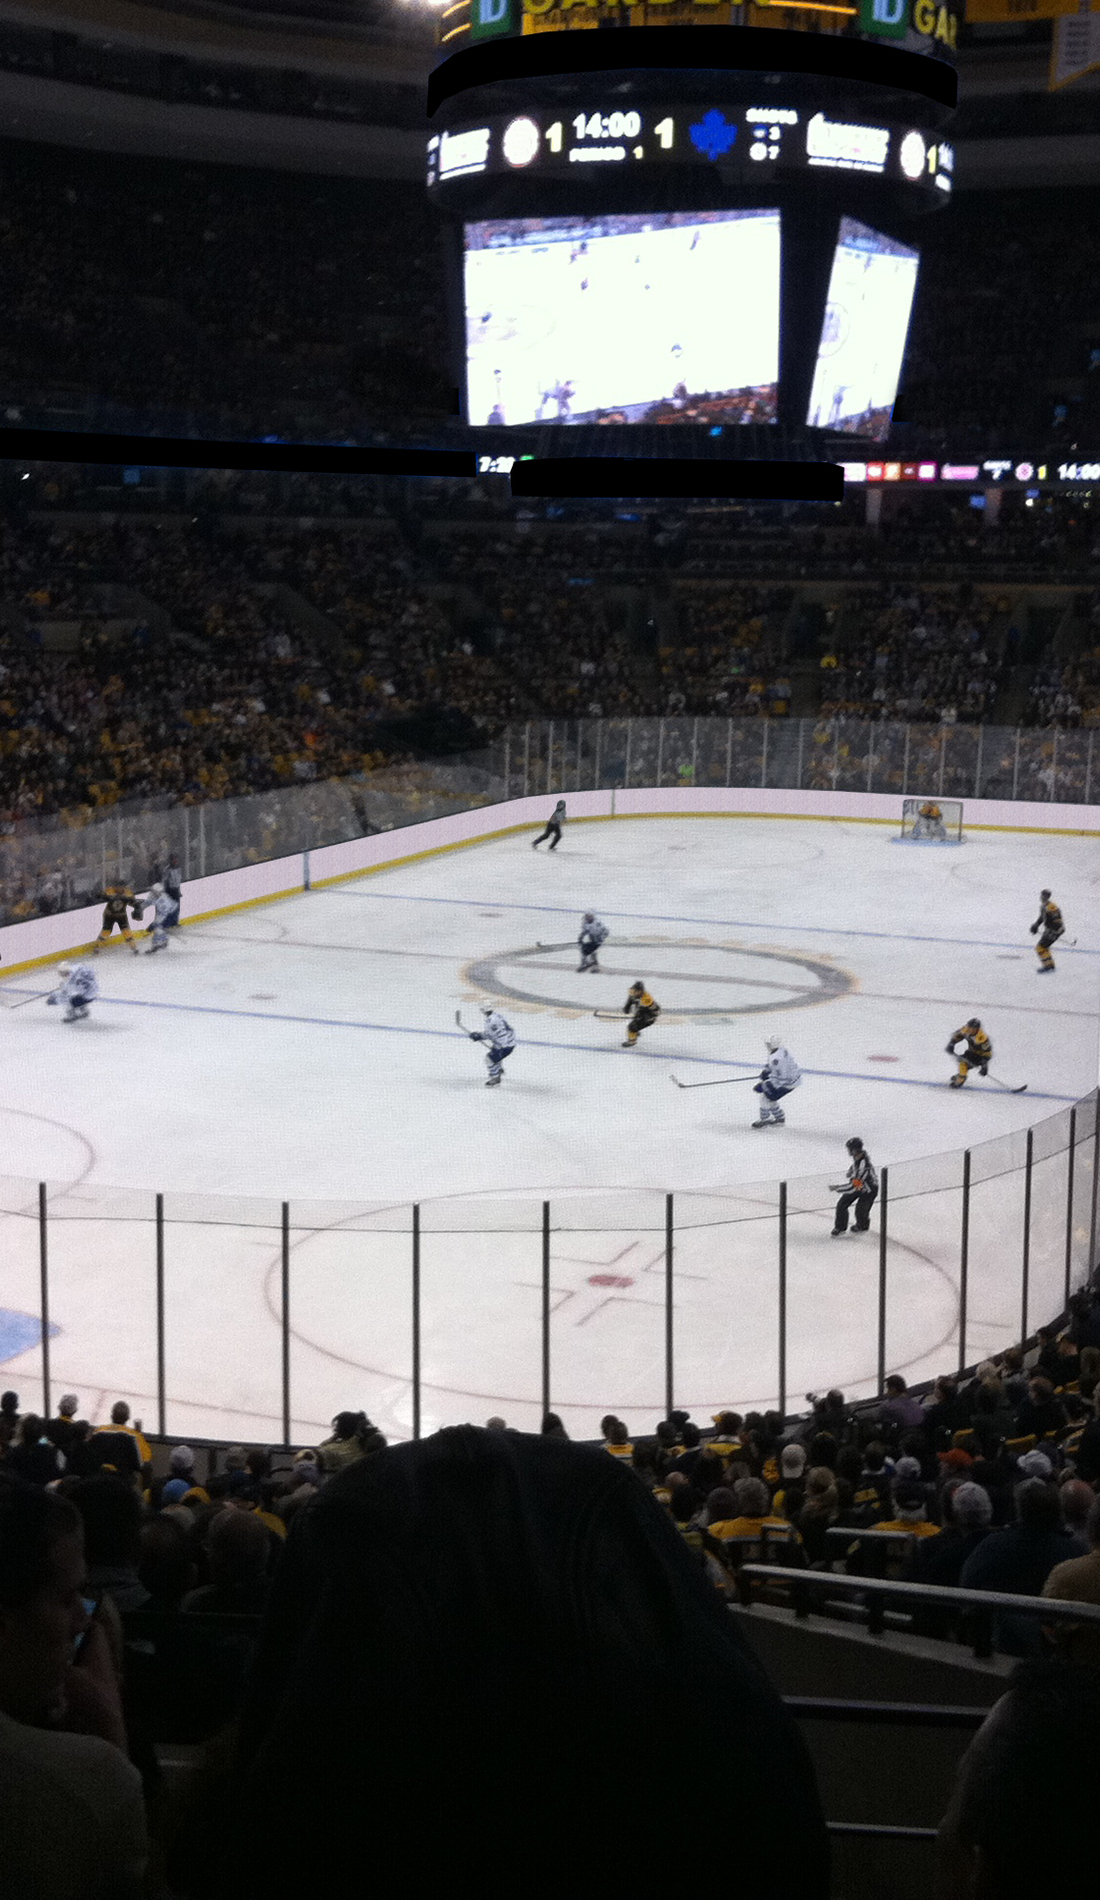 A Boston Bruins live event